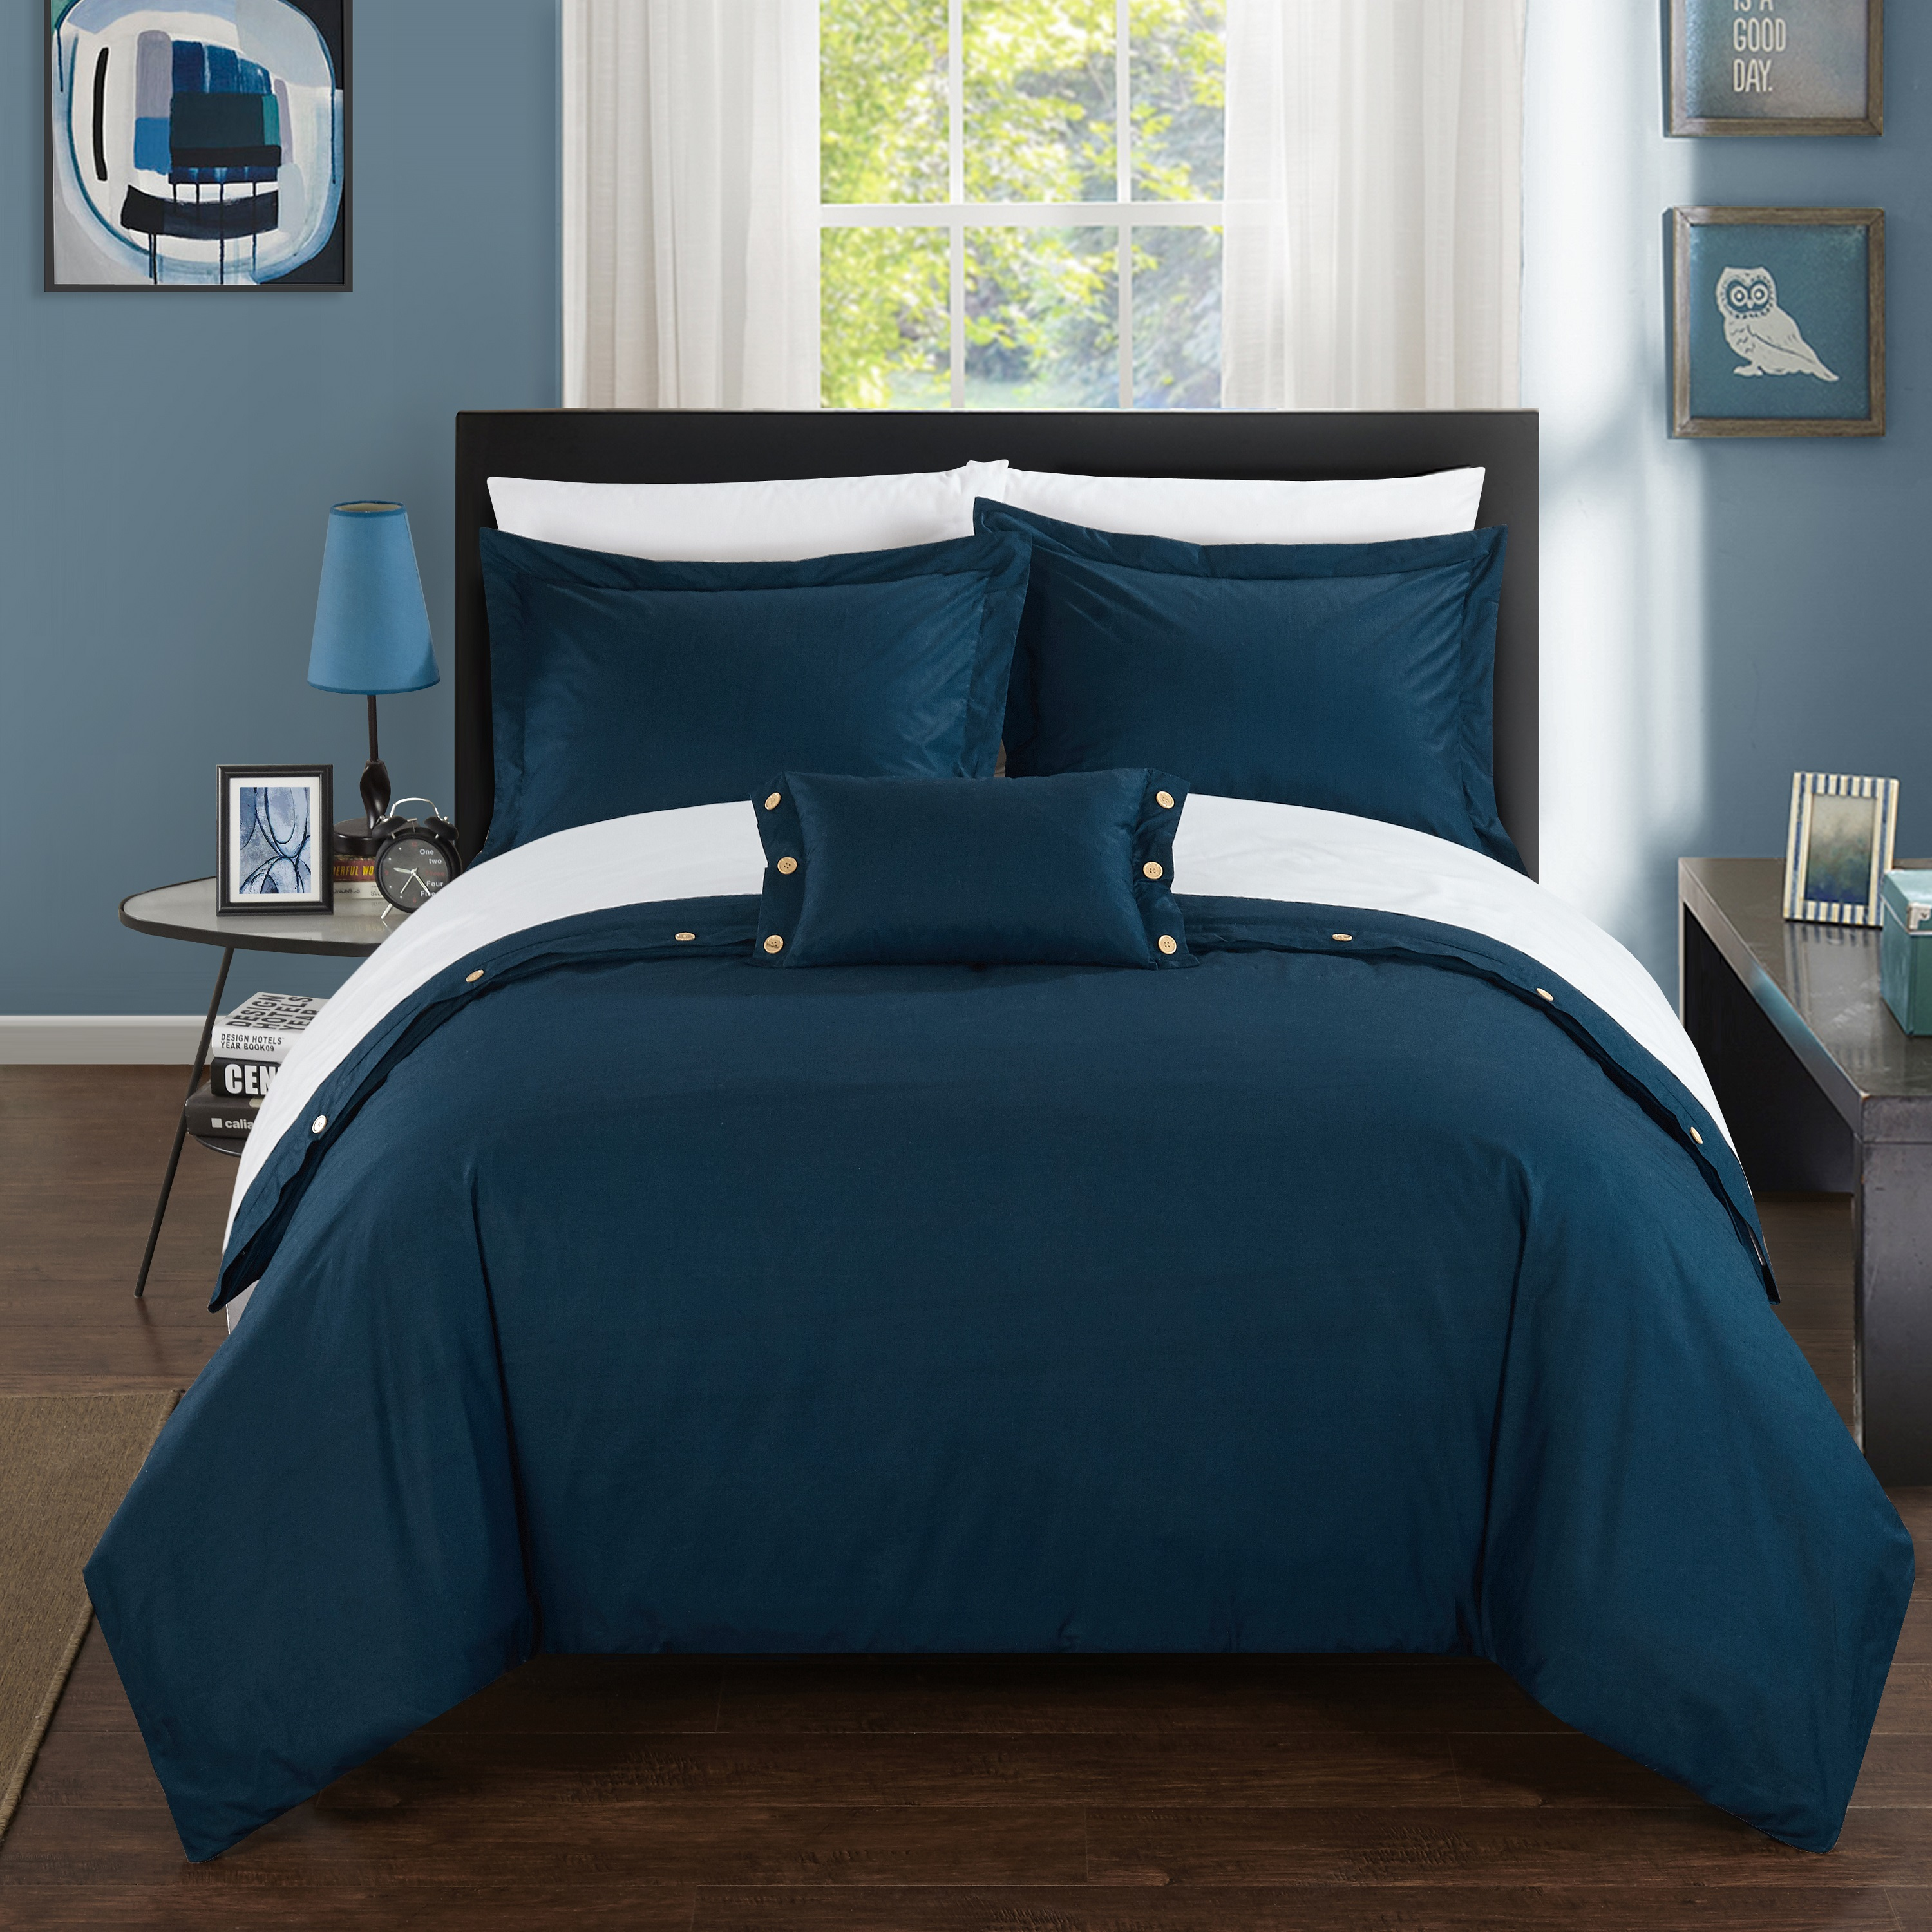 Chic Home 8-Piece Astrid 200 Thread Count COMBED FINISH 100% Cotton Twill Weave Decorative Button Closure Detail Queen Bed In a Bag Duvet Set Navy With sheet set